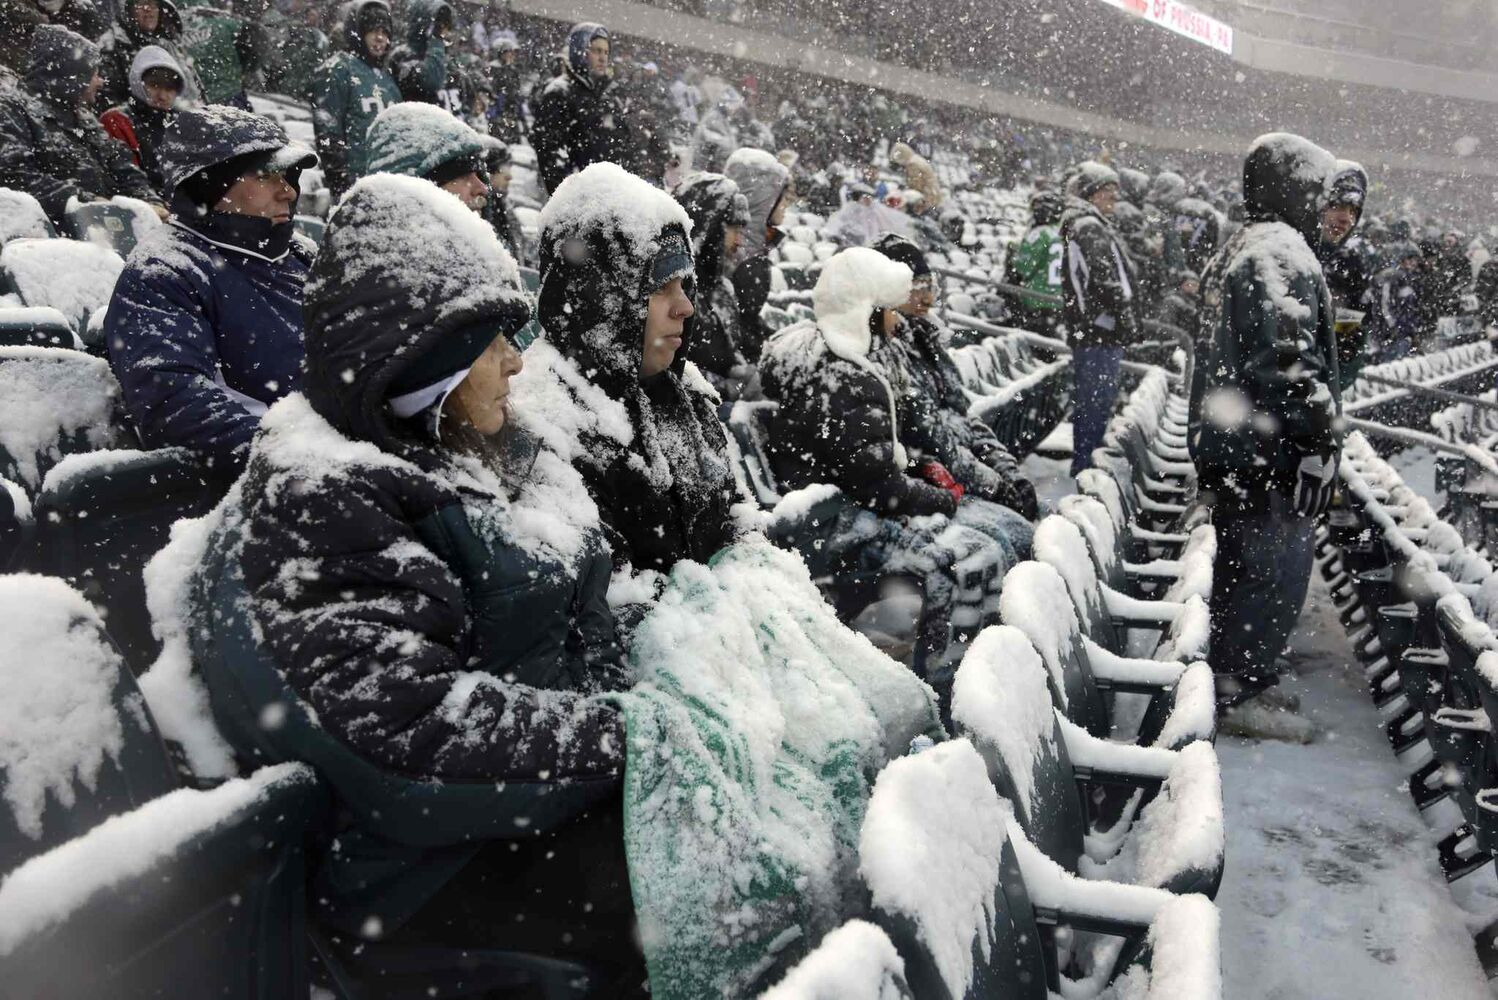 Fans covered with snow wait in the stands before an NFL football game between the Philadelphia Eagles and the Detroit Lions in Philadelphia on Sunday.